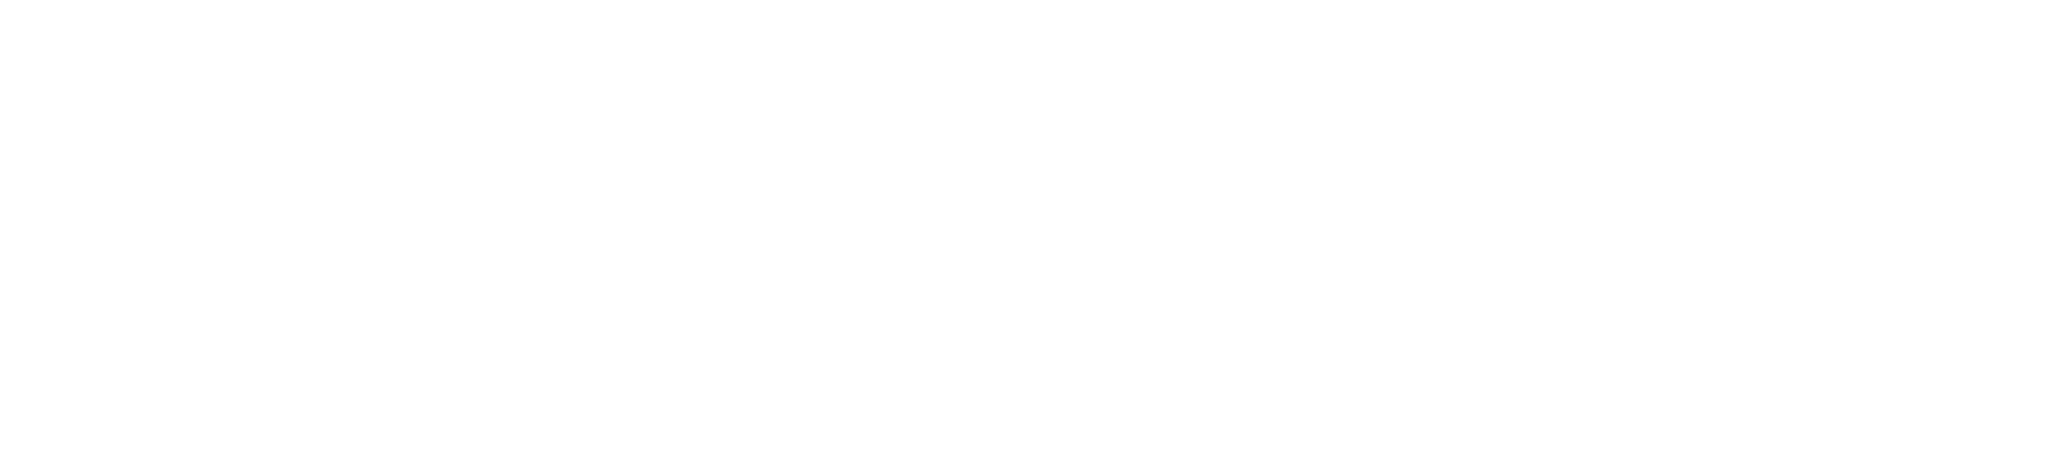 HubSpot Solution Partner Logo